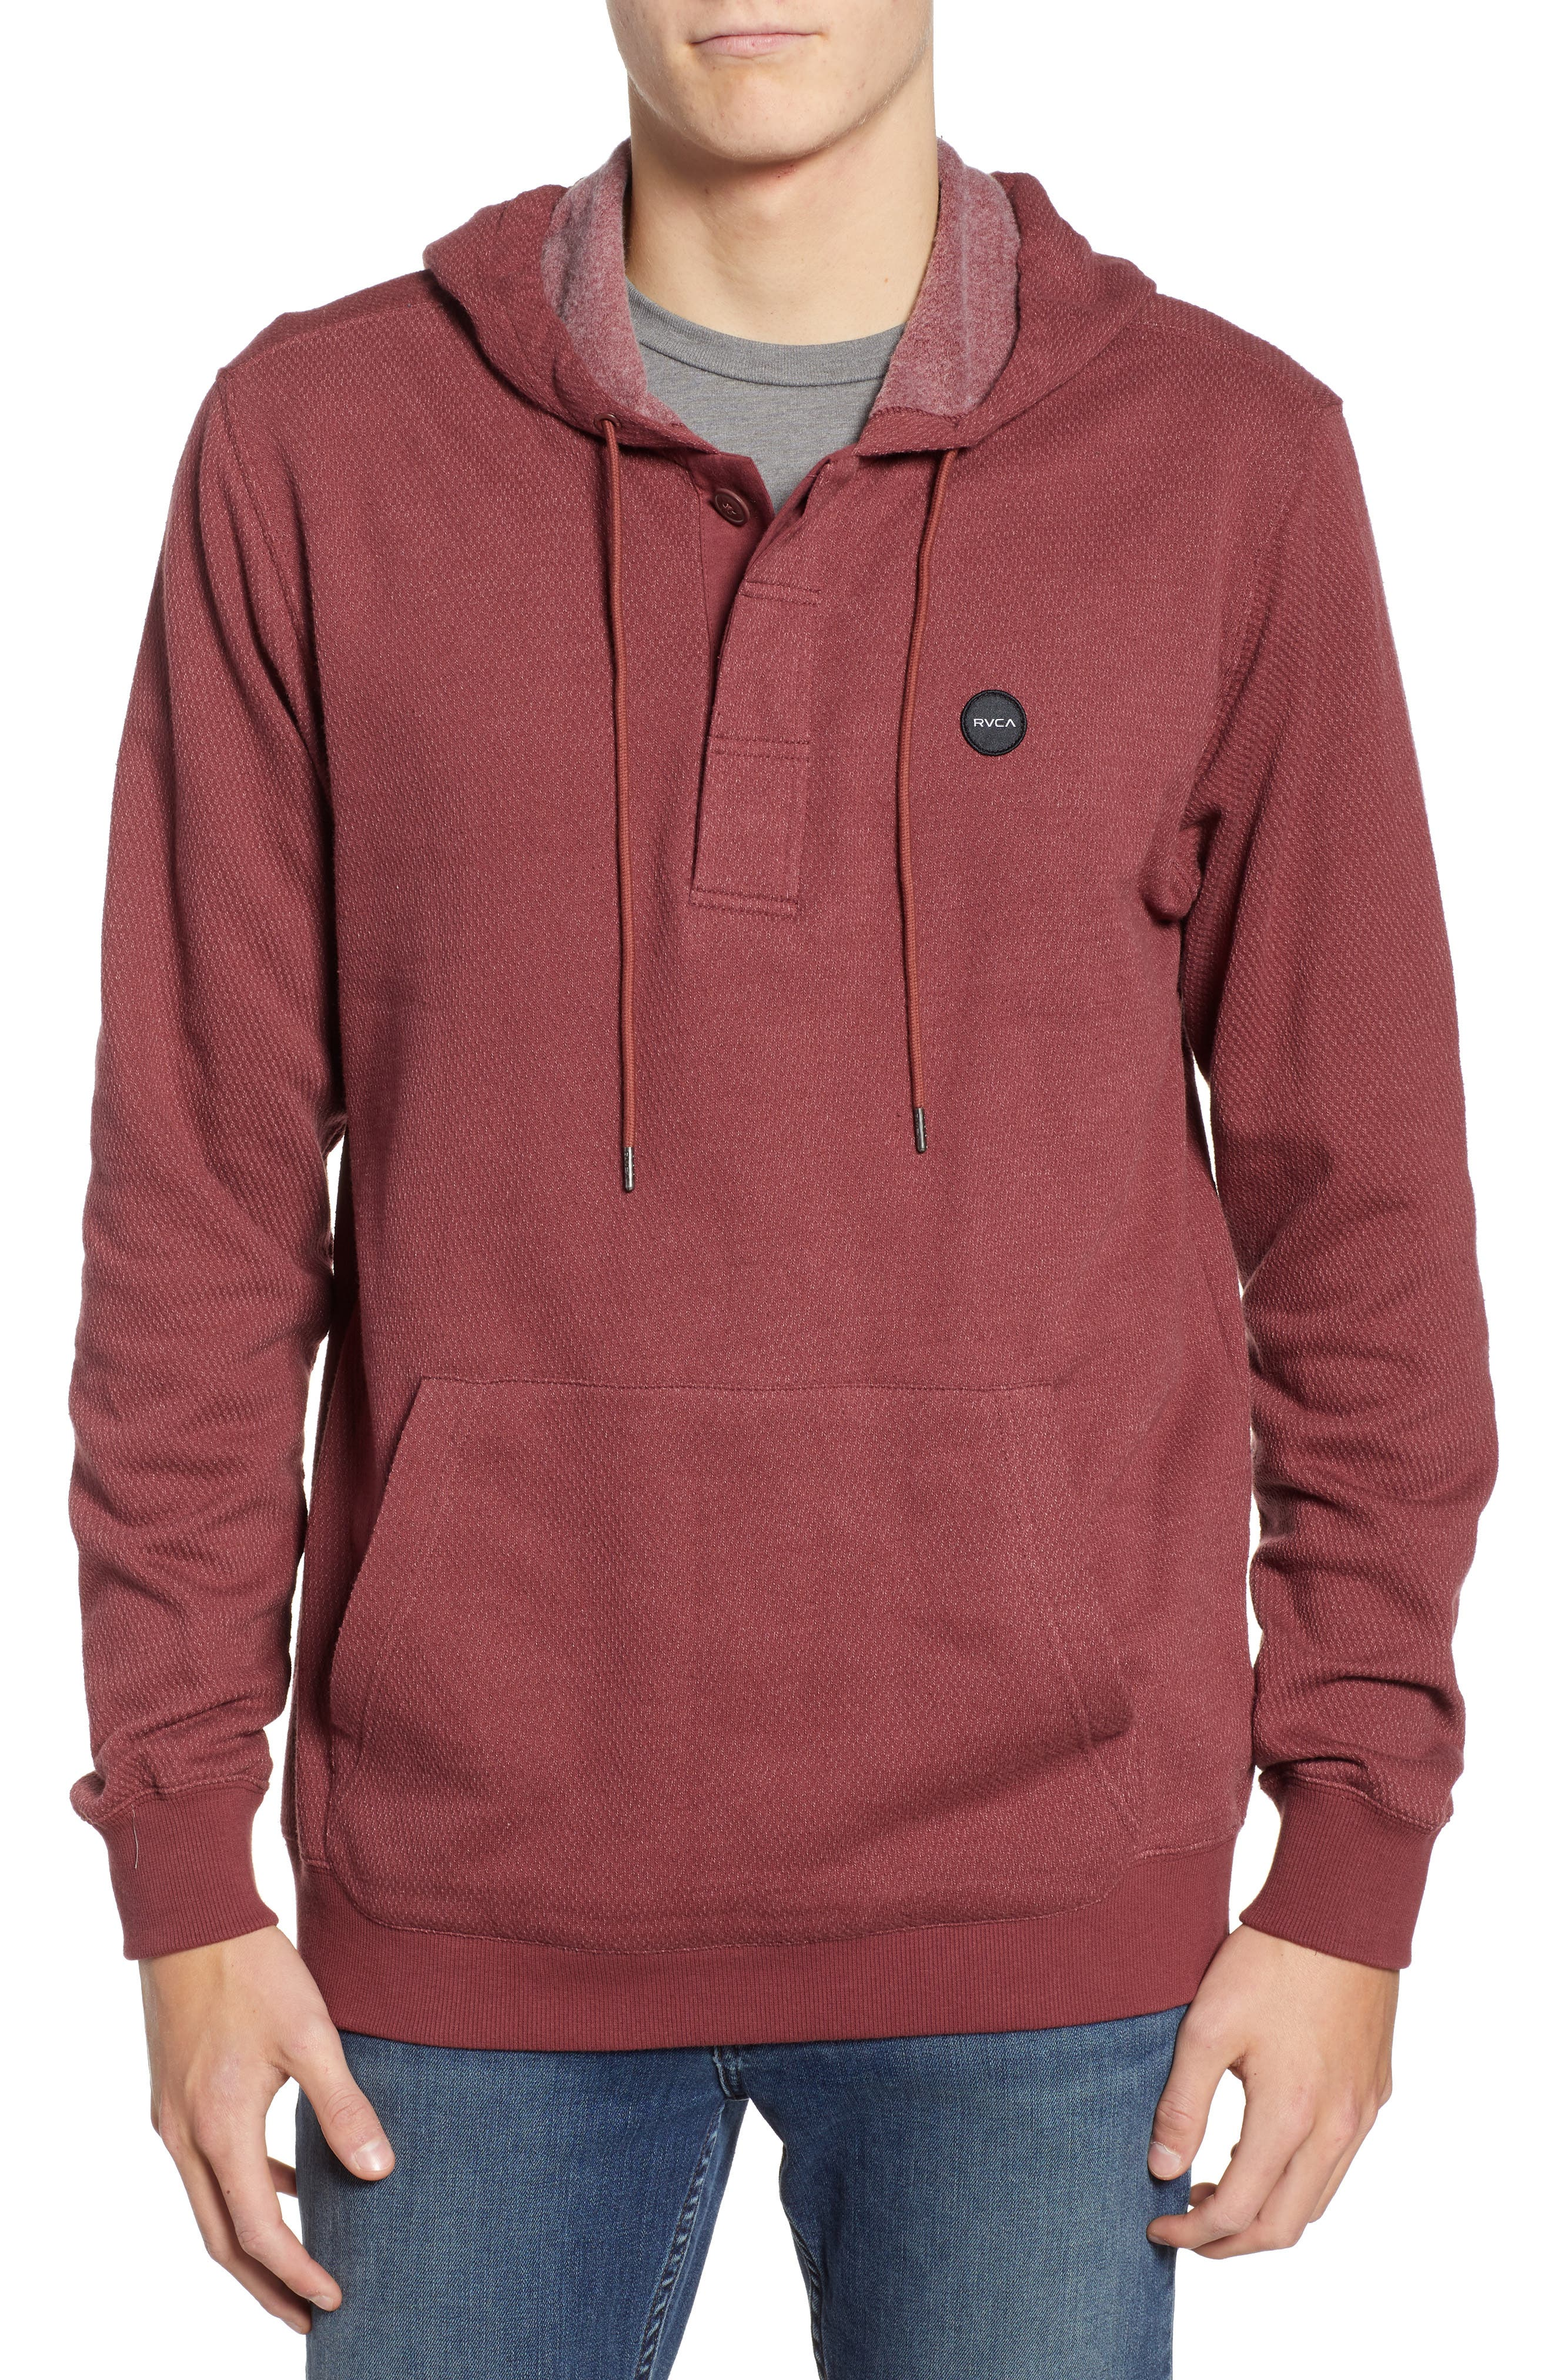 RVCA Lupo Pullover Hoodie in Bordeaux